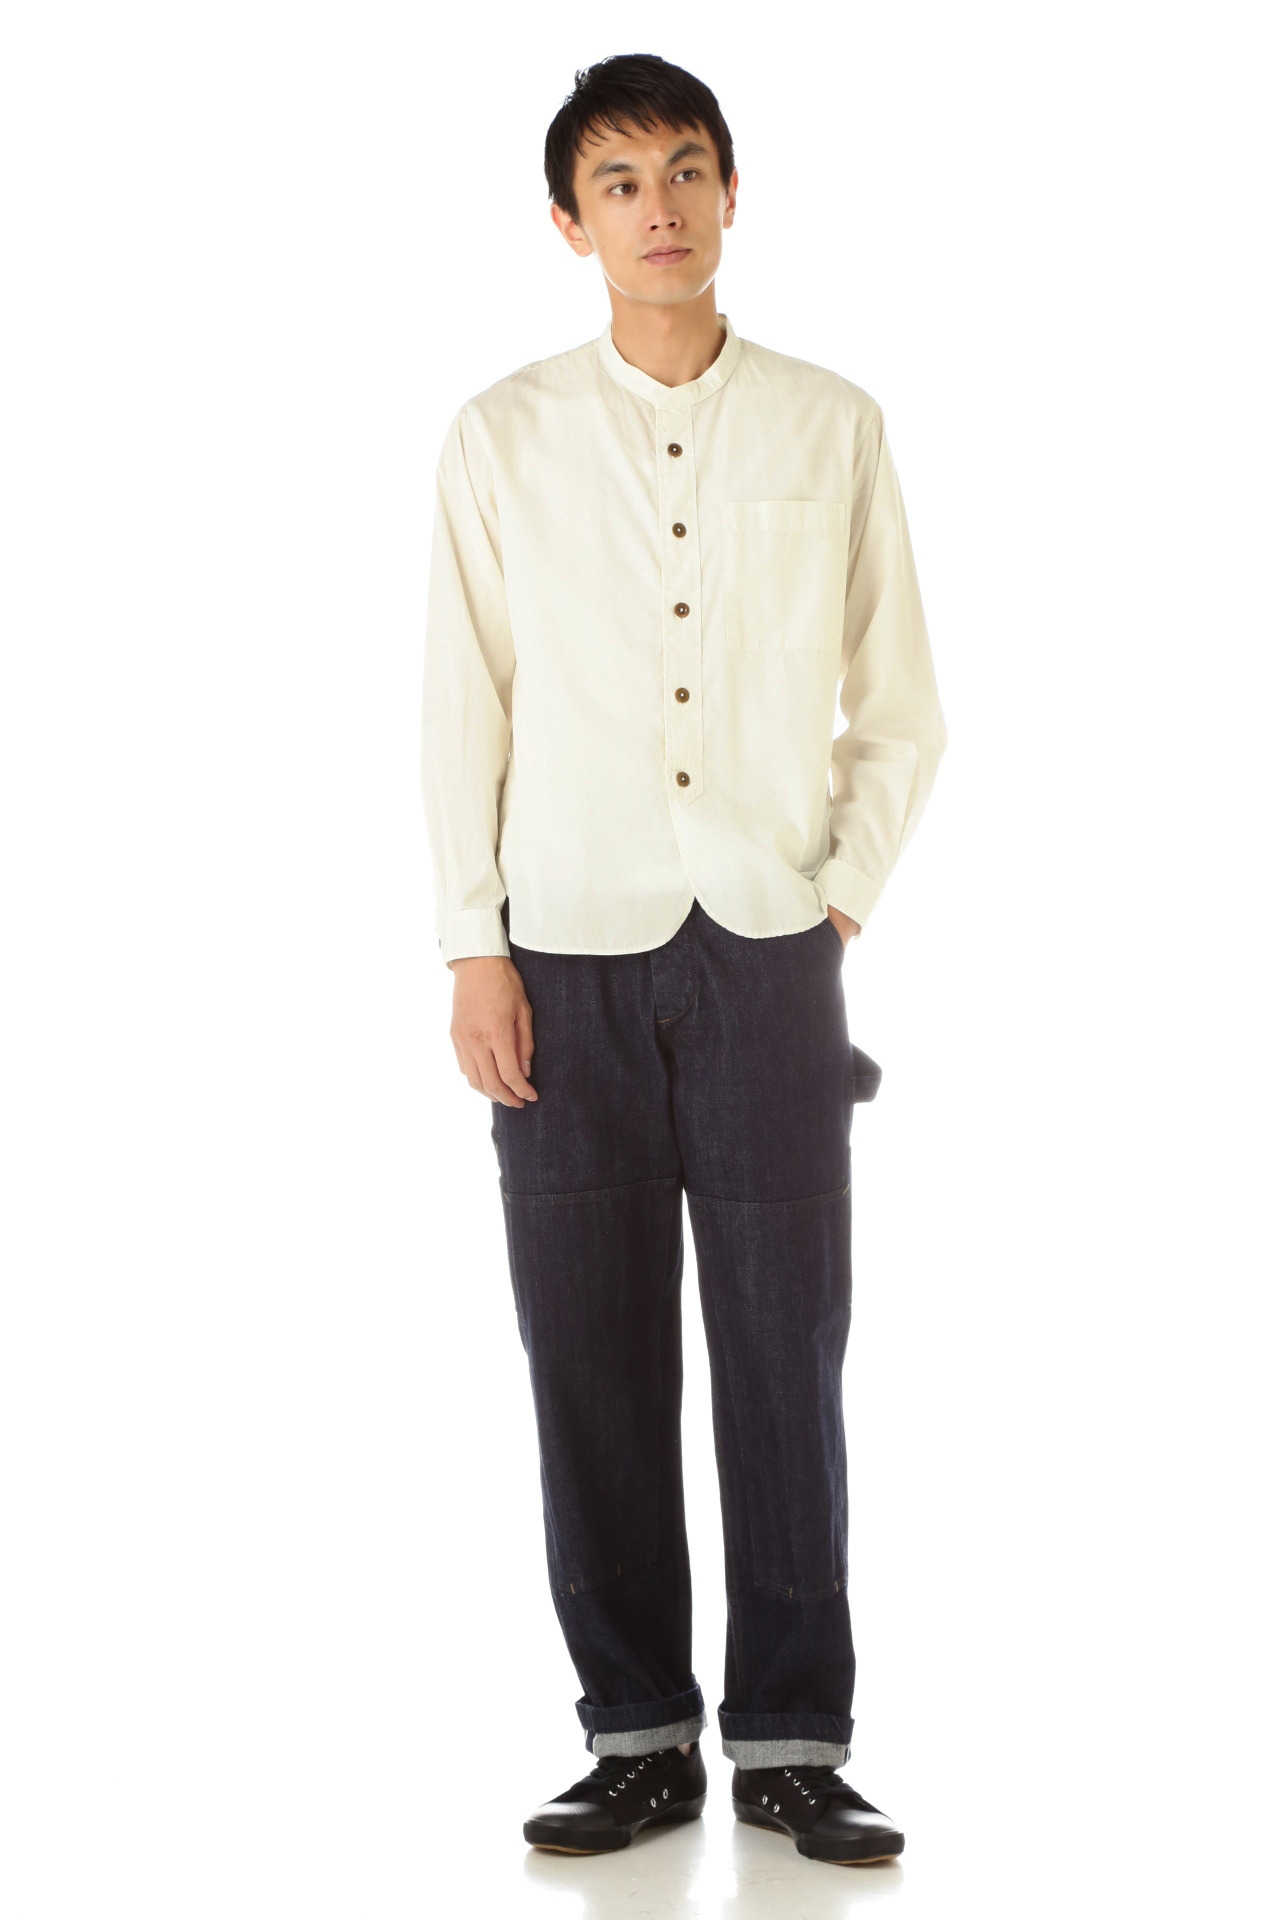 GARMENT DYE BASIC POPLIN(MHL SHOP限定)9